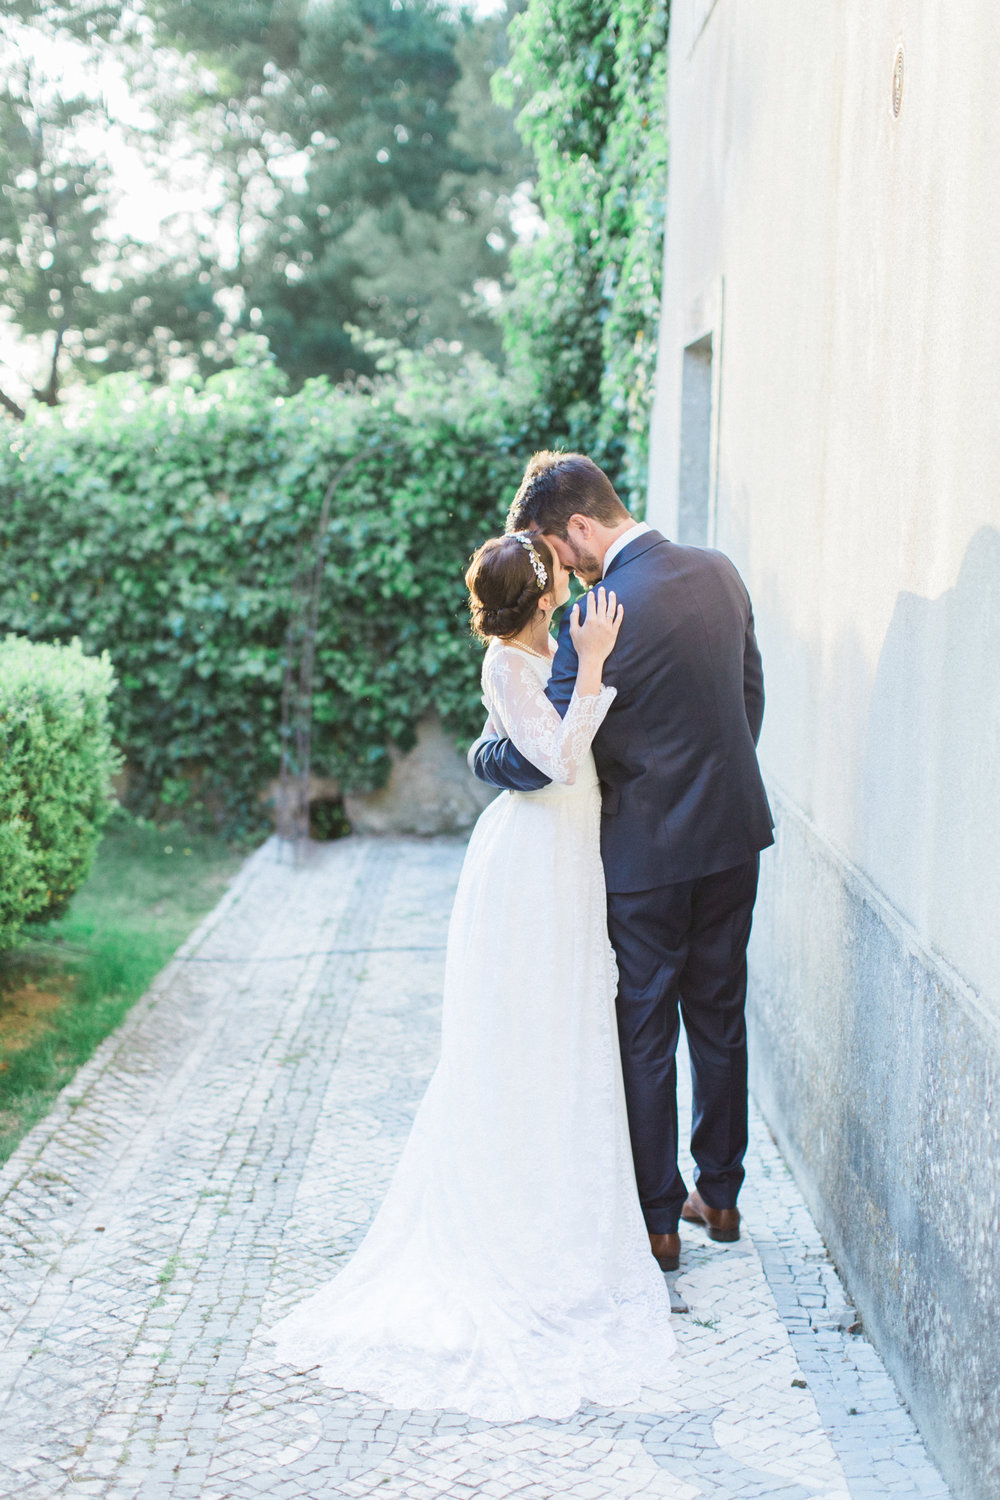 mariaraophotography_weddingsintra-731 web.jpg